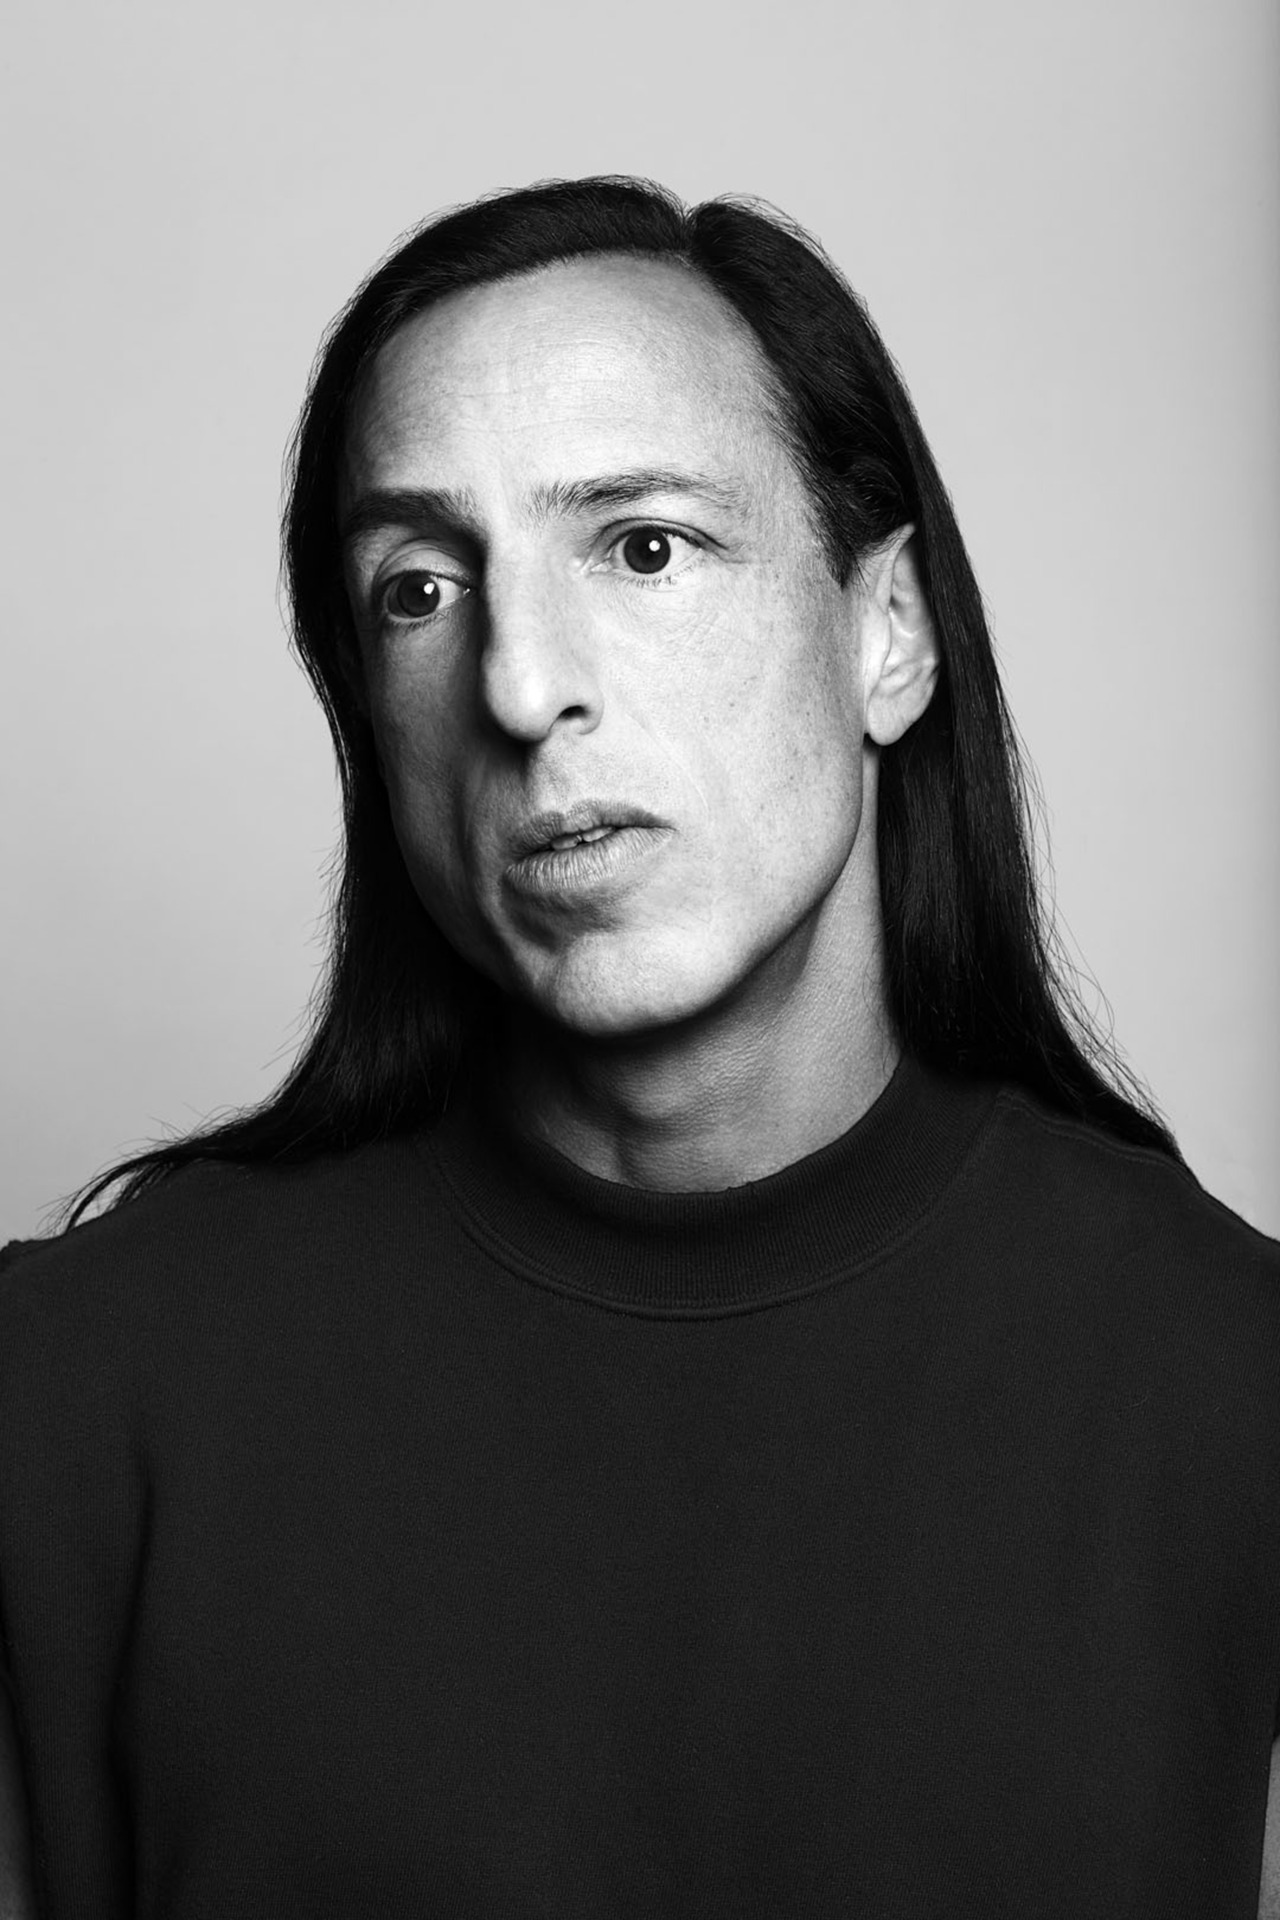 Rick Owens by Danielle Levitt We're so proud of our boy Rick Owens! Have you met his wife the incredible MICHELE LAMY? Um, yeah, she's the epitome of class, complimenting the very powerful Rick in every way possible. They're beautiful together. If you go to his site, listen to the music for the Fall/Winter 2012/2013 fashion show. Rick came across this insanely raw, NYC talent by the name of Zebra Katz.  Check it out, you guys! ima fierce! Oh and if youve not seen it, now its video time. In Paris I made a documentary on Rick and Michele, its all here  http://www.anothermag.com/exclusives/rick-owens